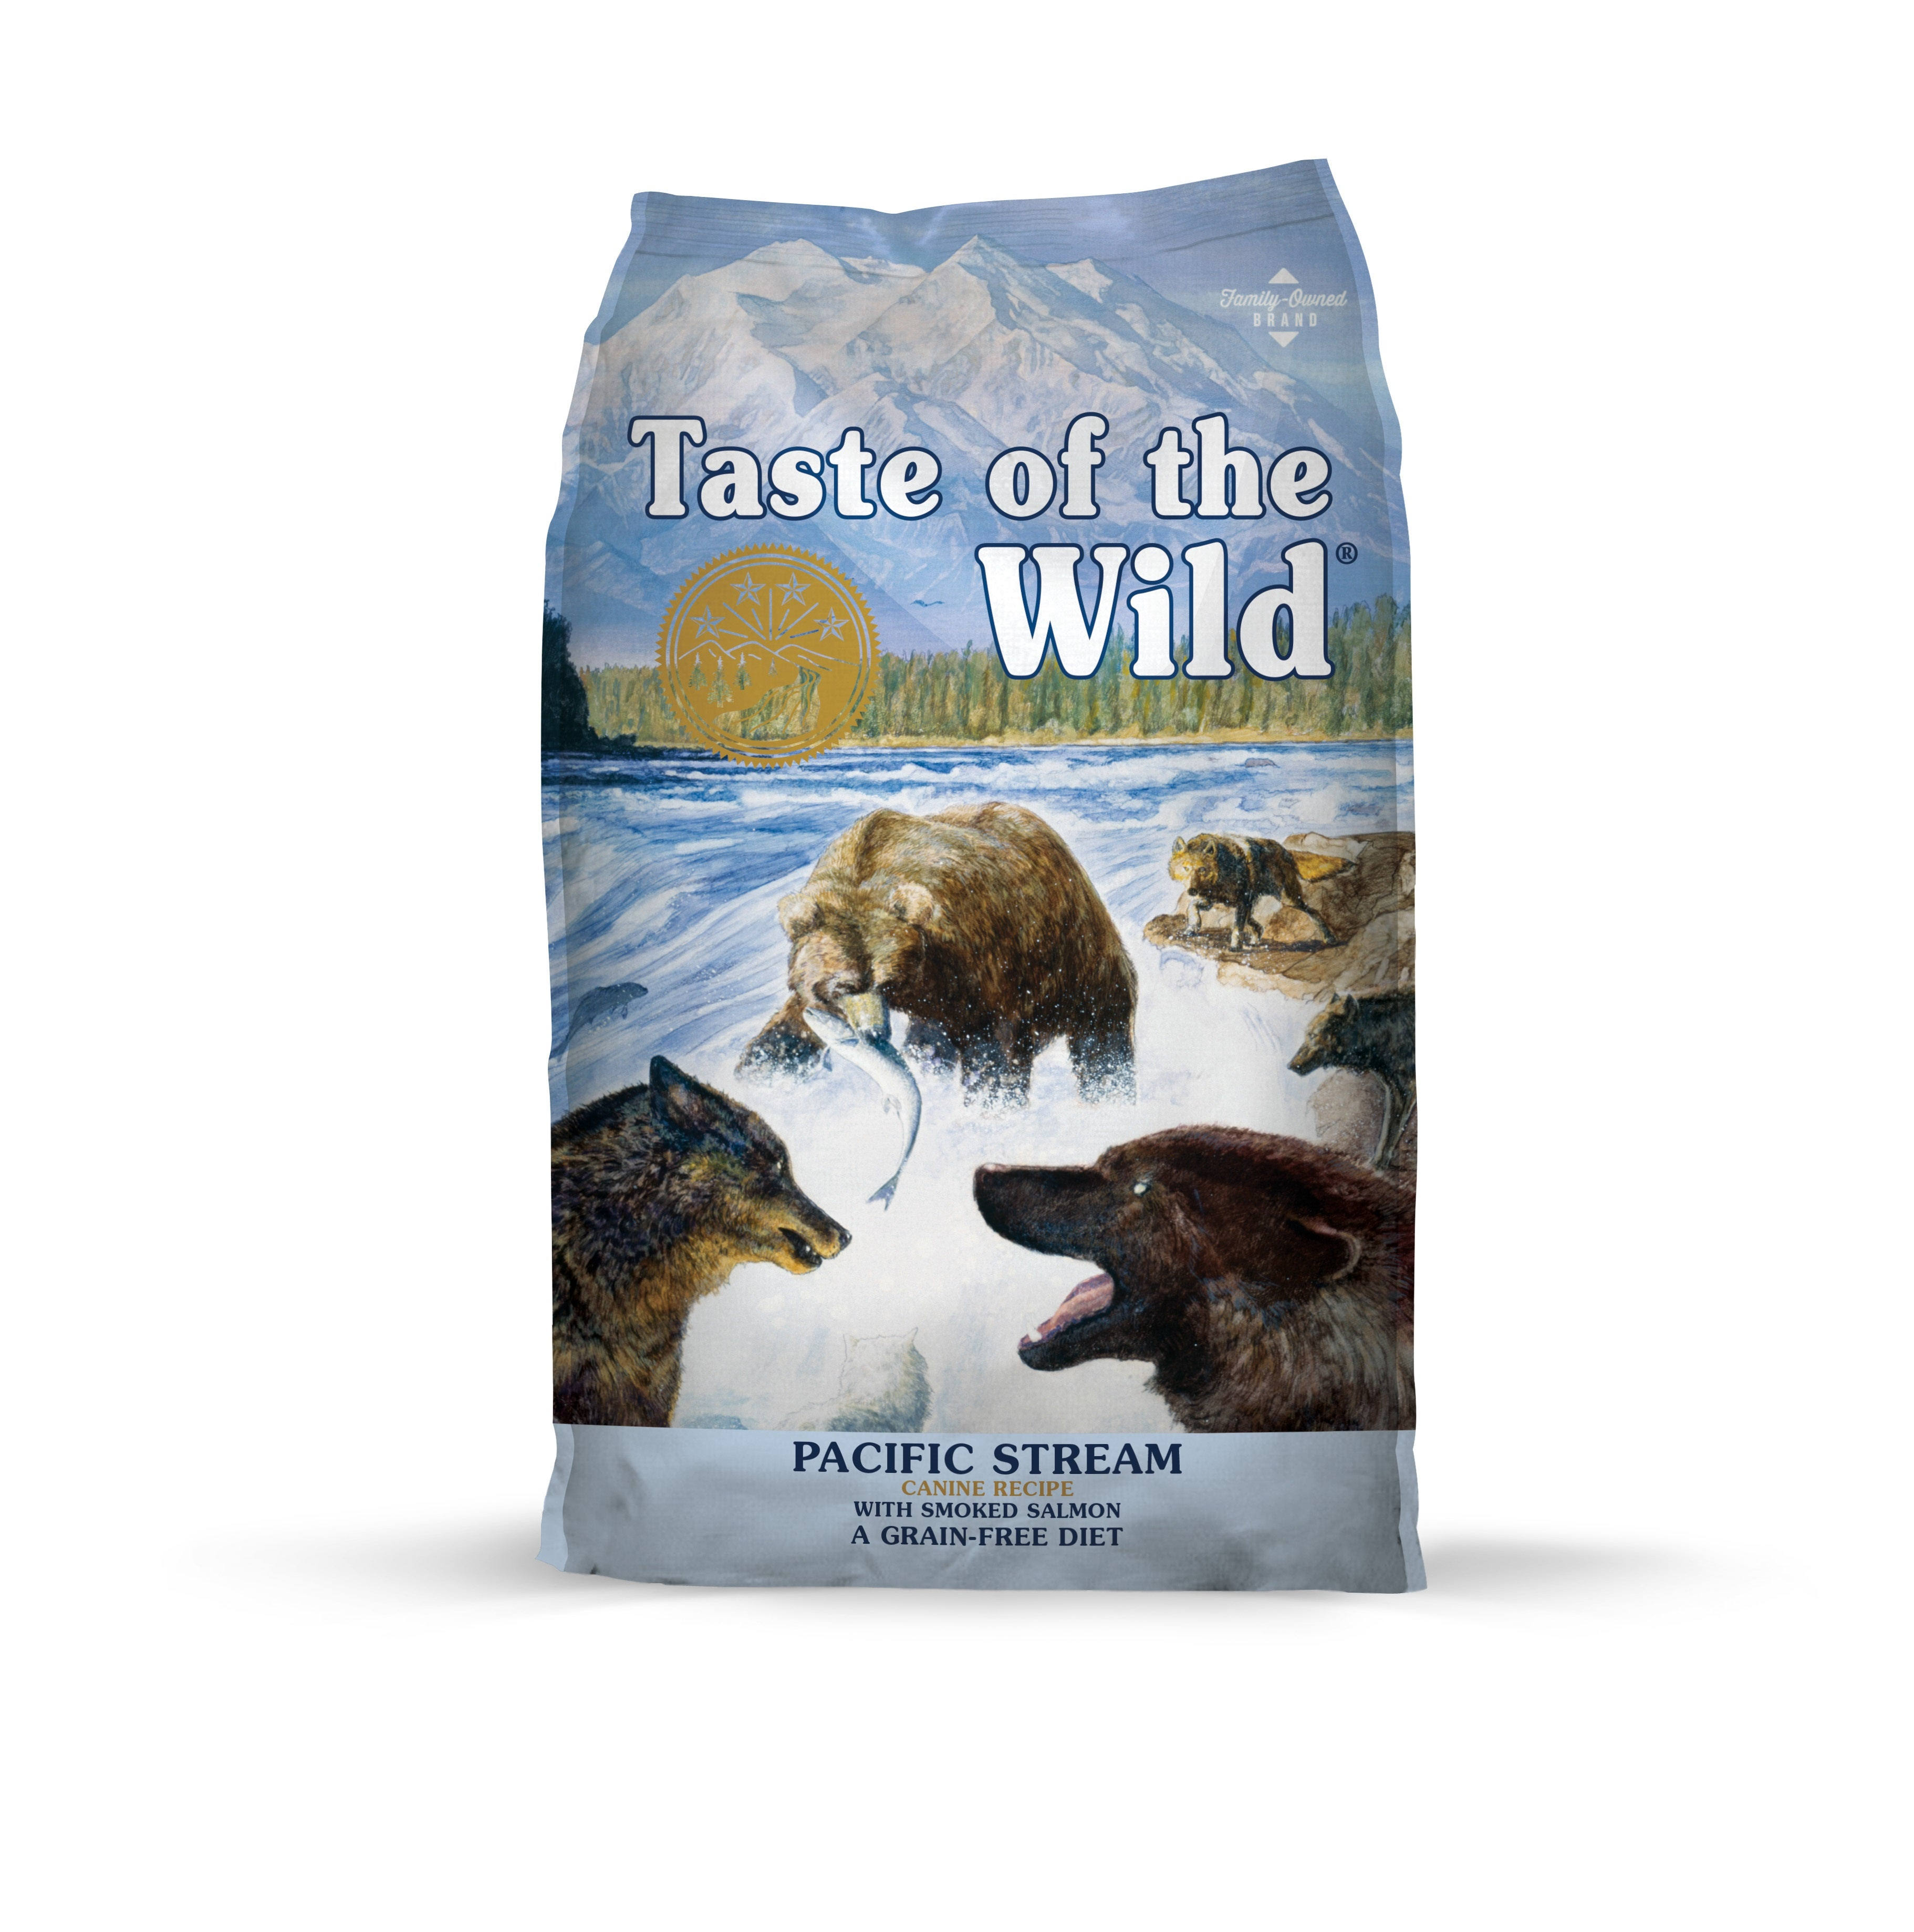 Taste of the Wild Dry Dog Food - Pacific Stream Canine Formula with Smoked Salmon